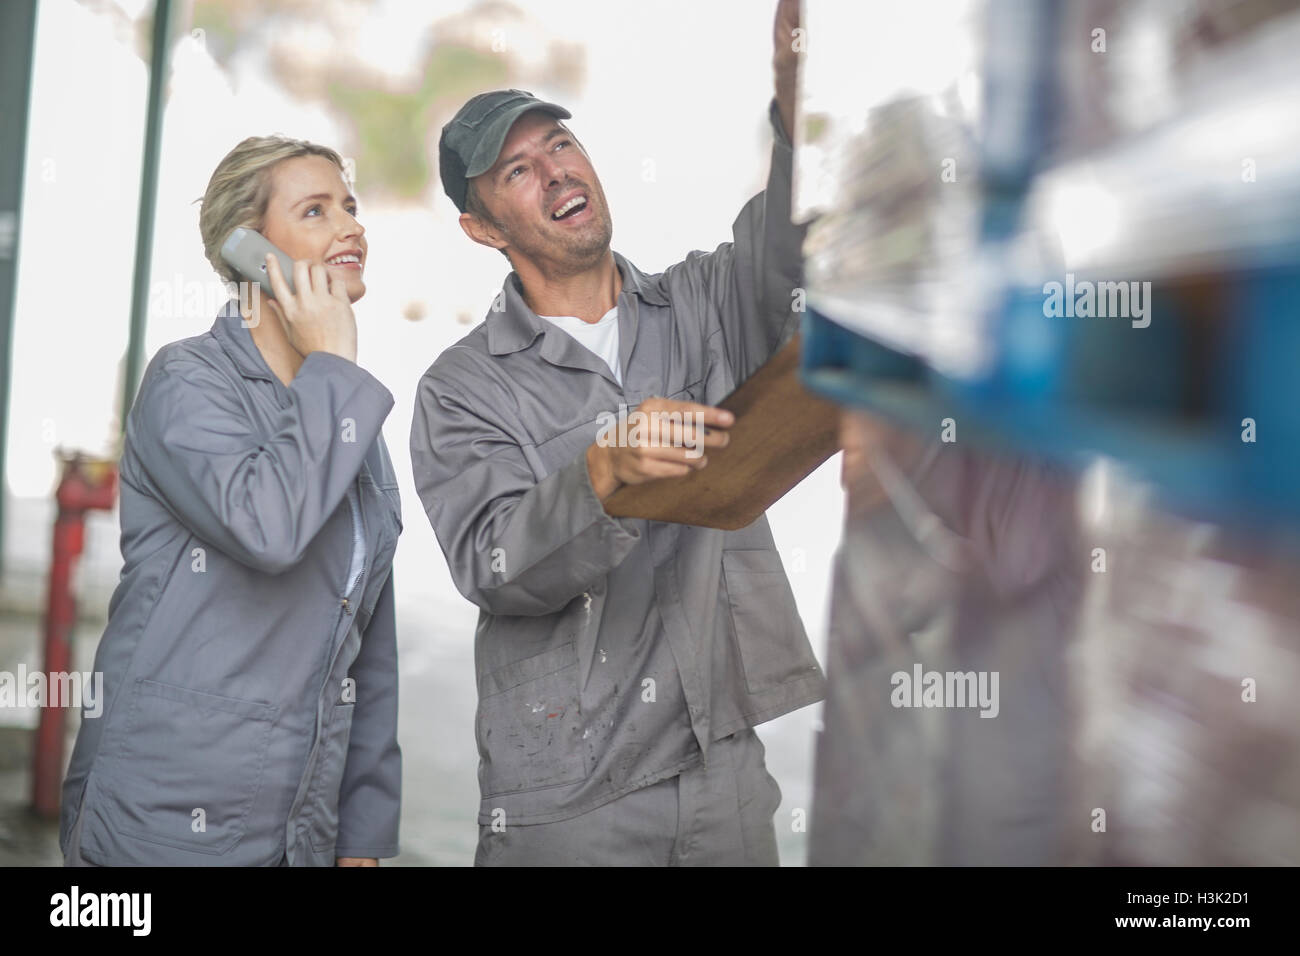 Factory supervisors with clipboard checking pallets at packaging factory - Stock Image